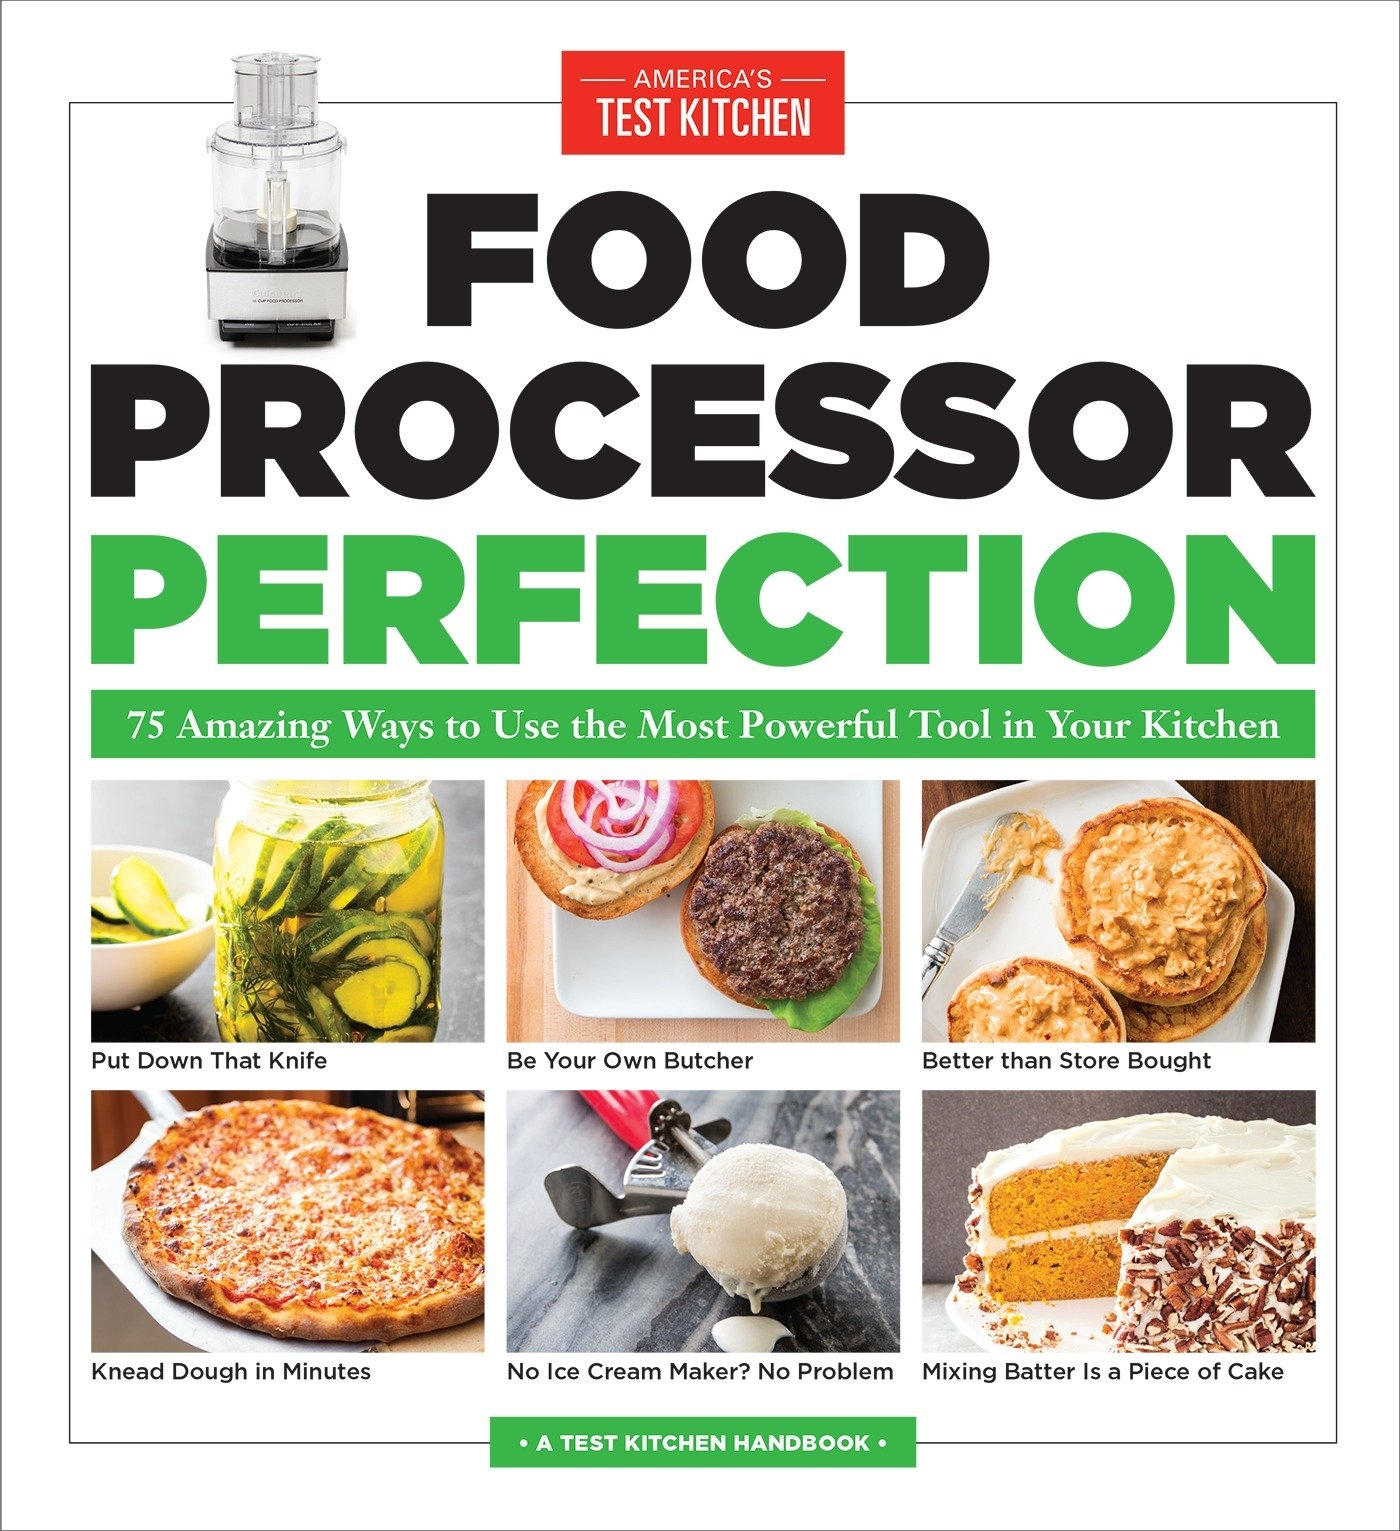 Food processor perfection 75 amazing ways to use the most food processor perfection 75 amazing ways to use the most powerful tool in your kitchen americas test kitchen 9781940352909 amazon books forumfinder Image collections